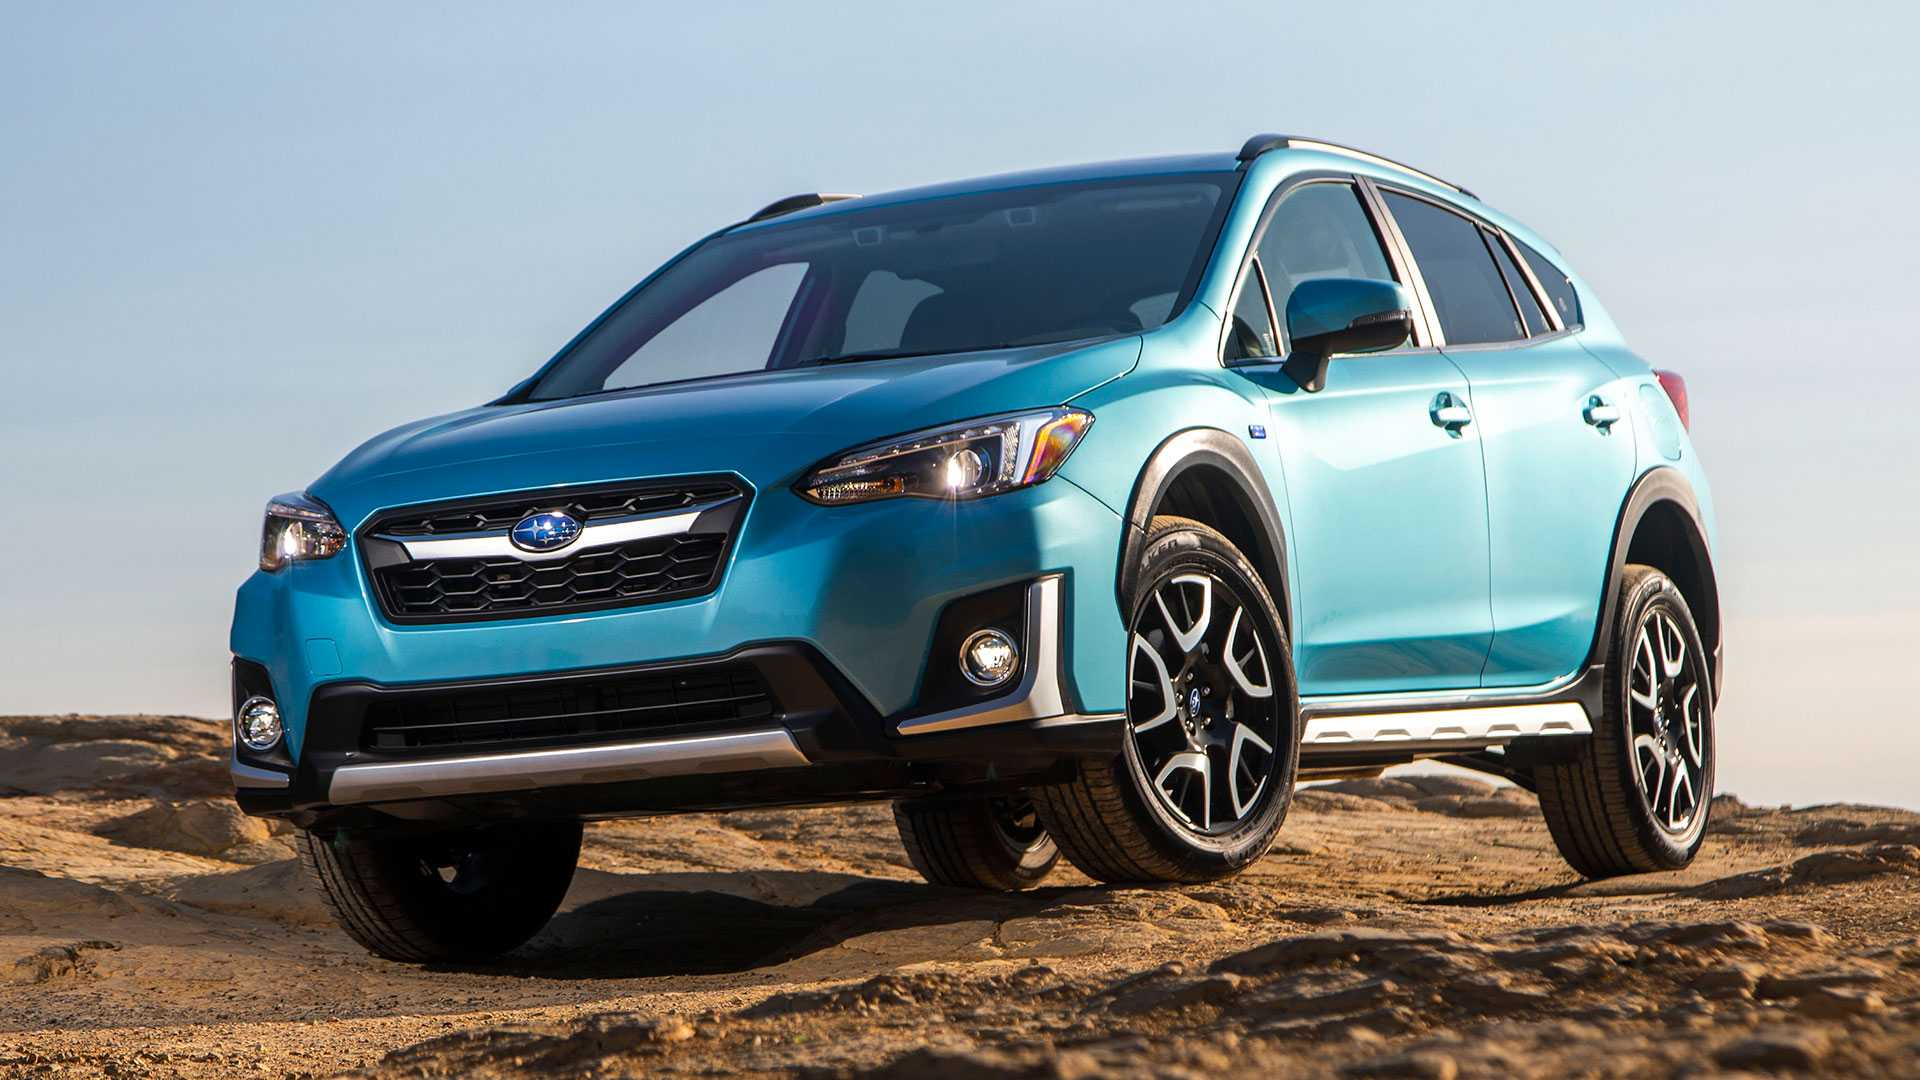 84 Gallery of Subaru Plans For 2019 Concept Redesign And Review Engine with Subaru Plans For 2019 Concept Redesign And Review